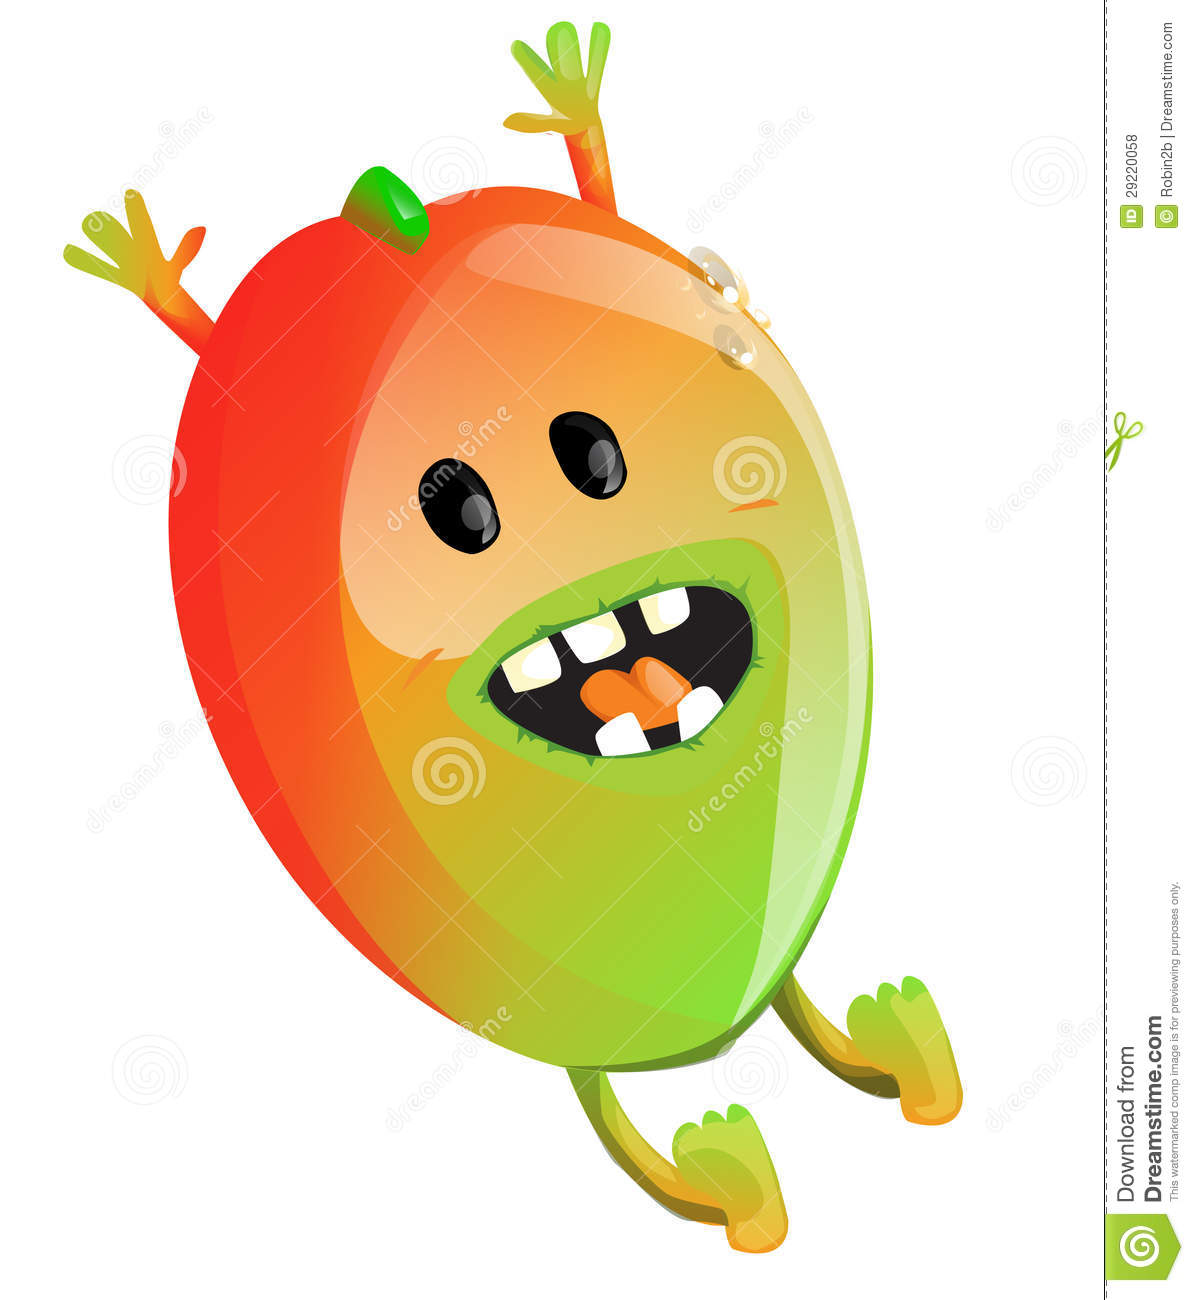 Cartoon Mango Royalty Free Stock Photos - Image: 29220058